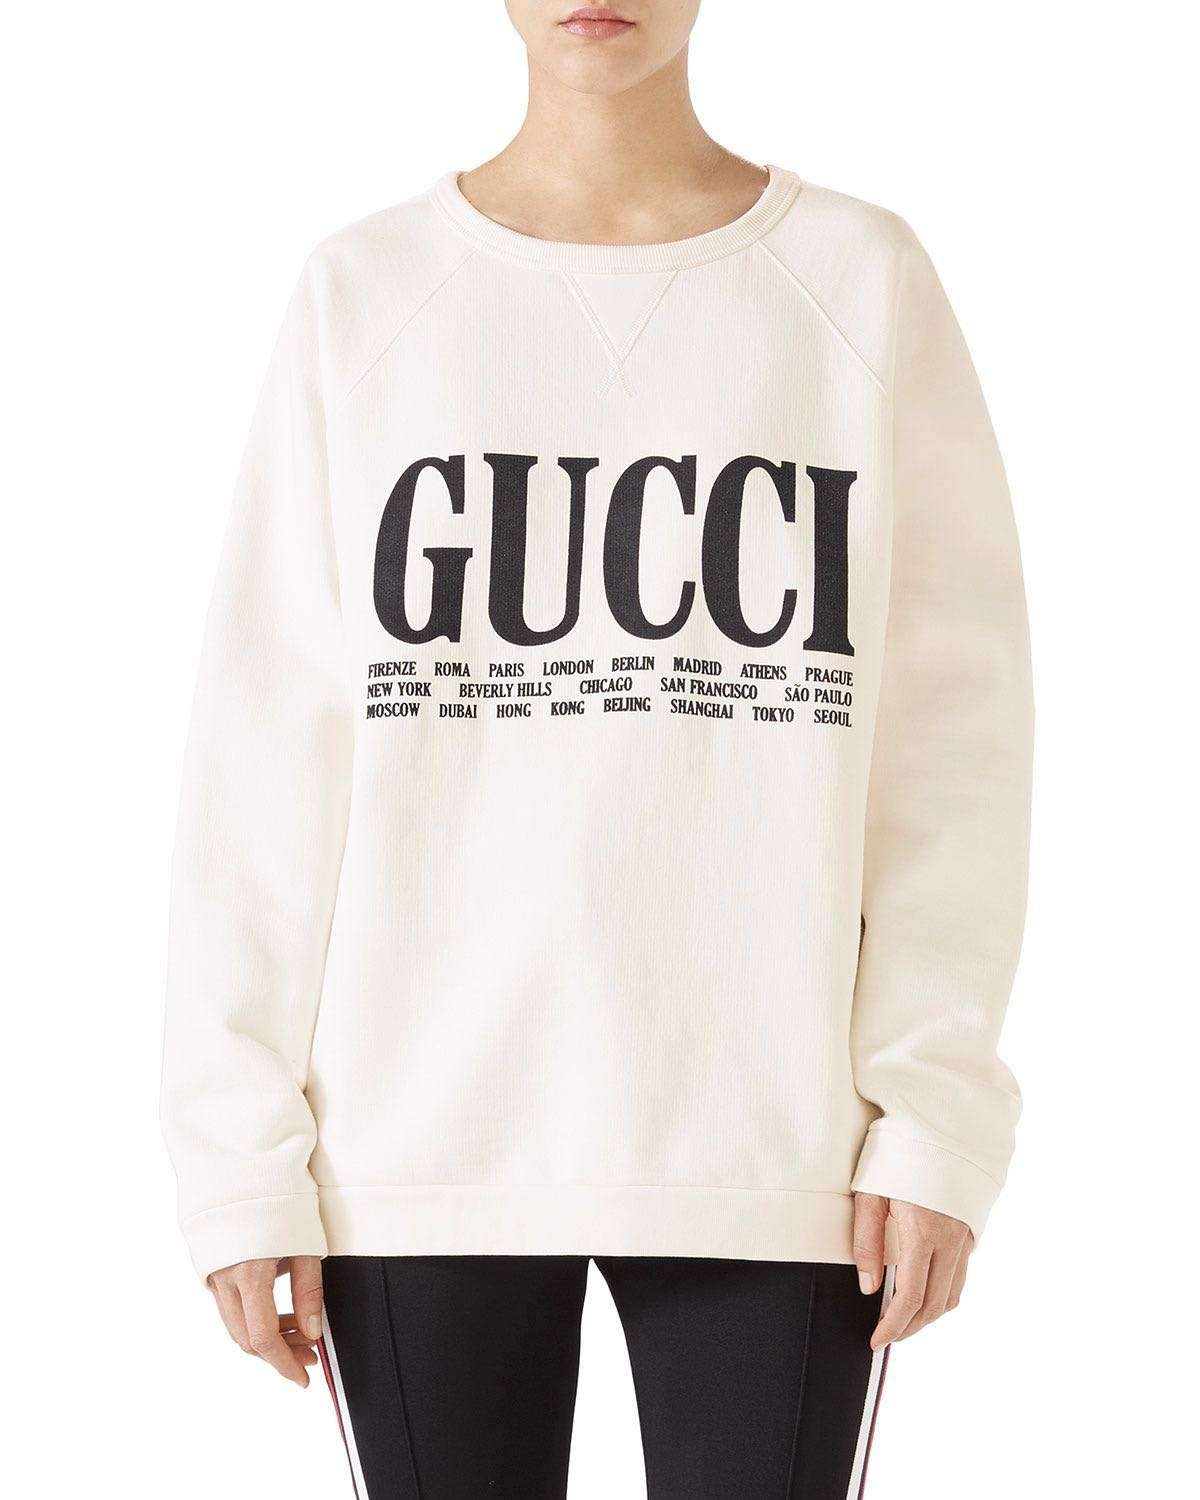 6b796c690d0 Authentic Gucci Cities Oversized Cotton Sweatshirt